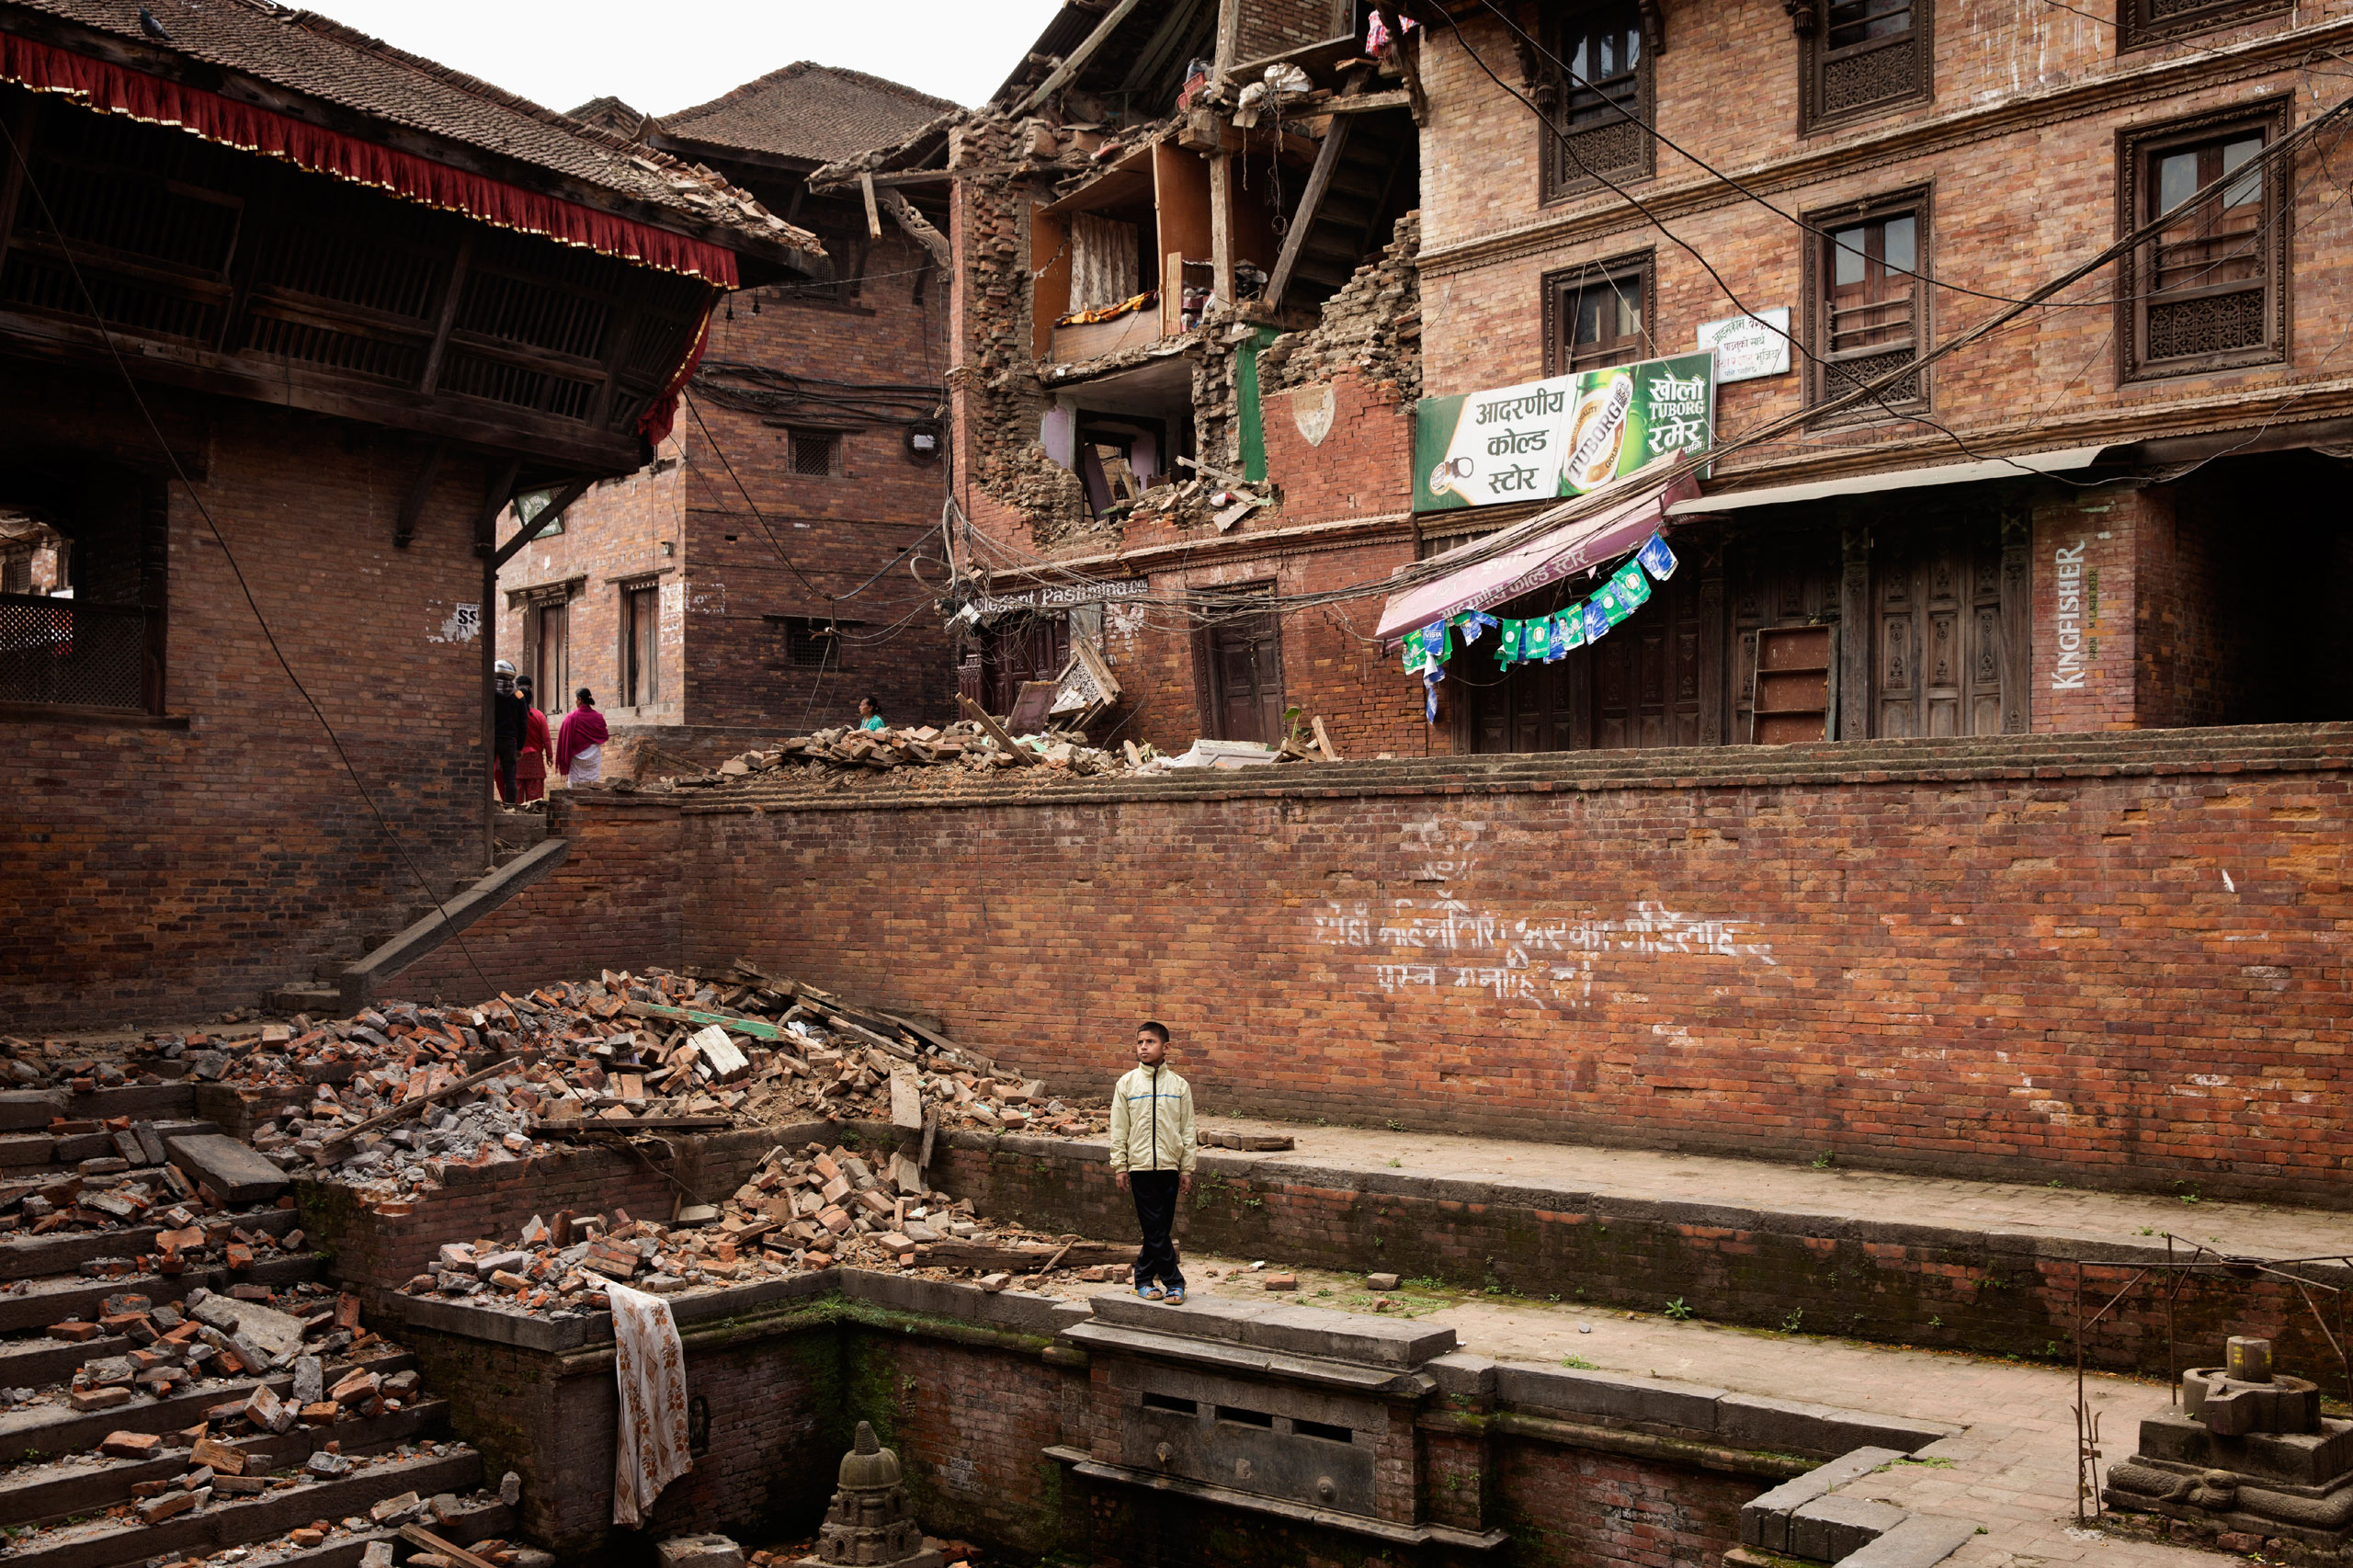 A Nepalese boy stands amid earthquake damage in the ancient city of Bhaktapur in the Kathmandu Valley, April  28, 2015, three days after a 7.8-magnitude earthquake had hit the country.